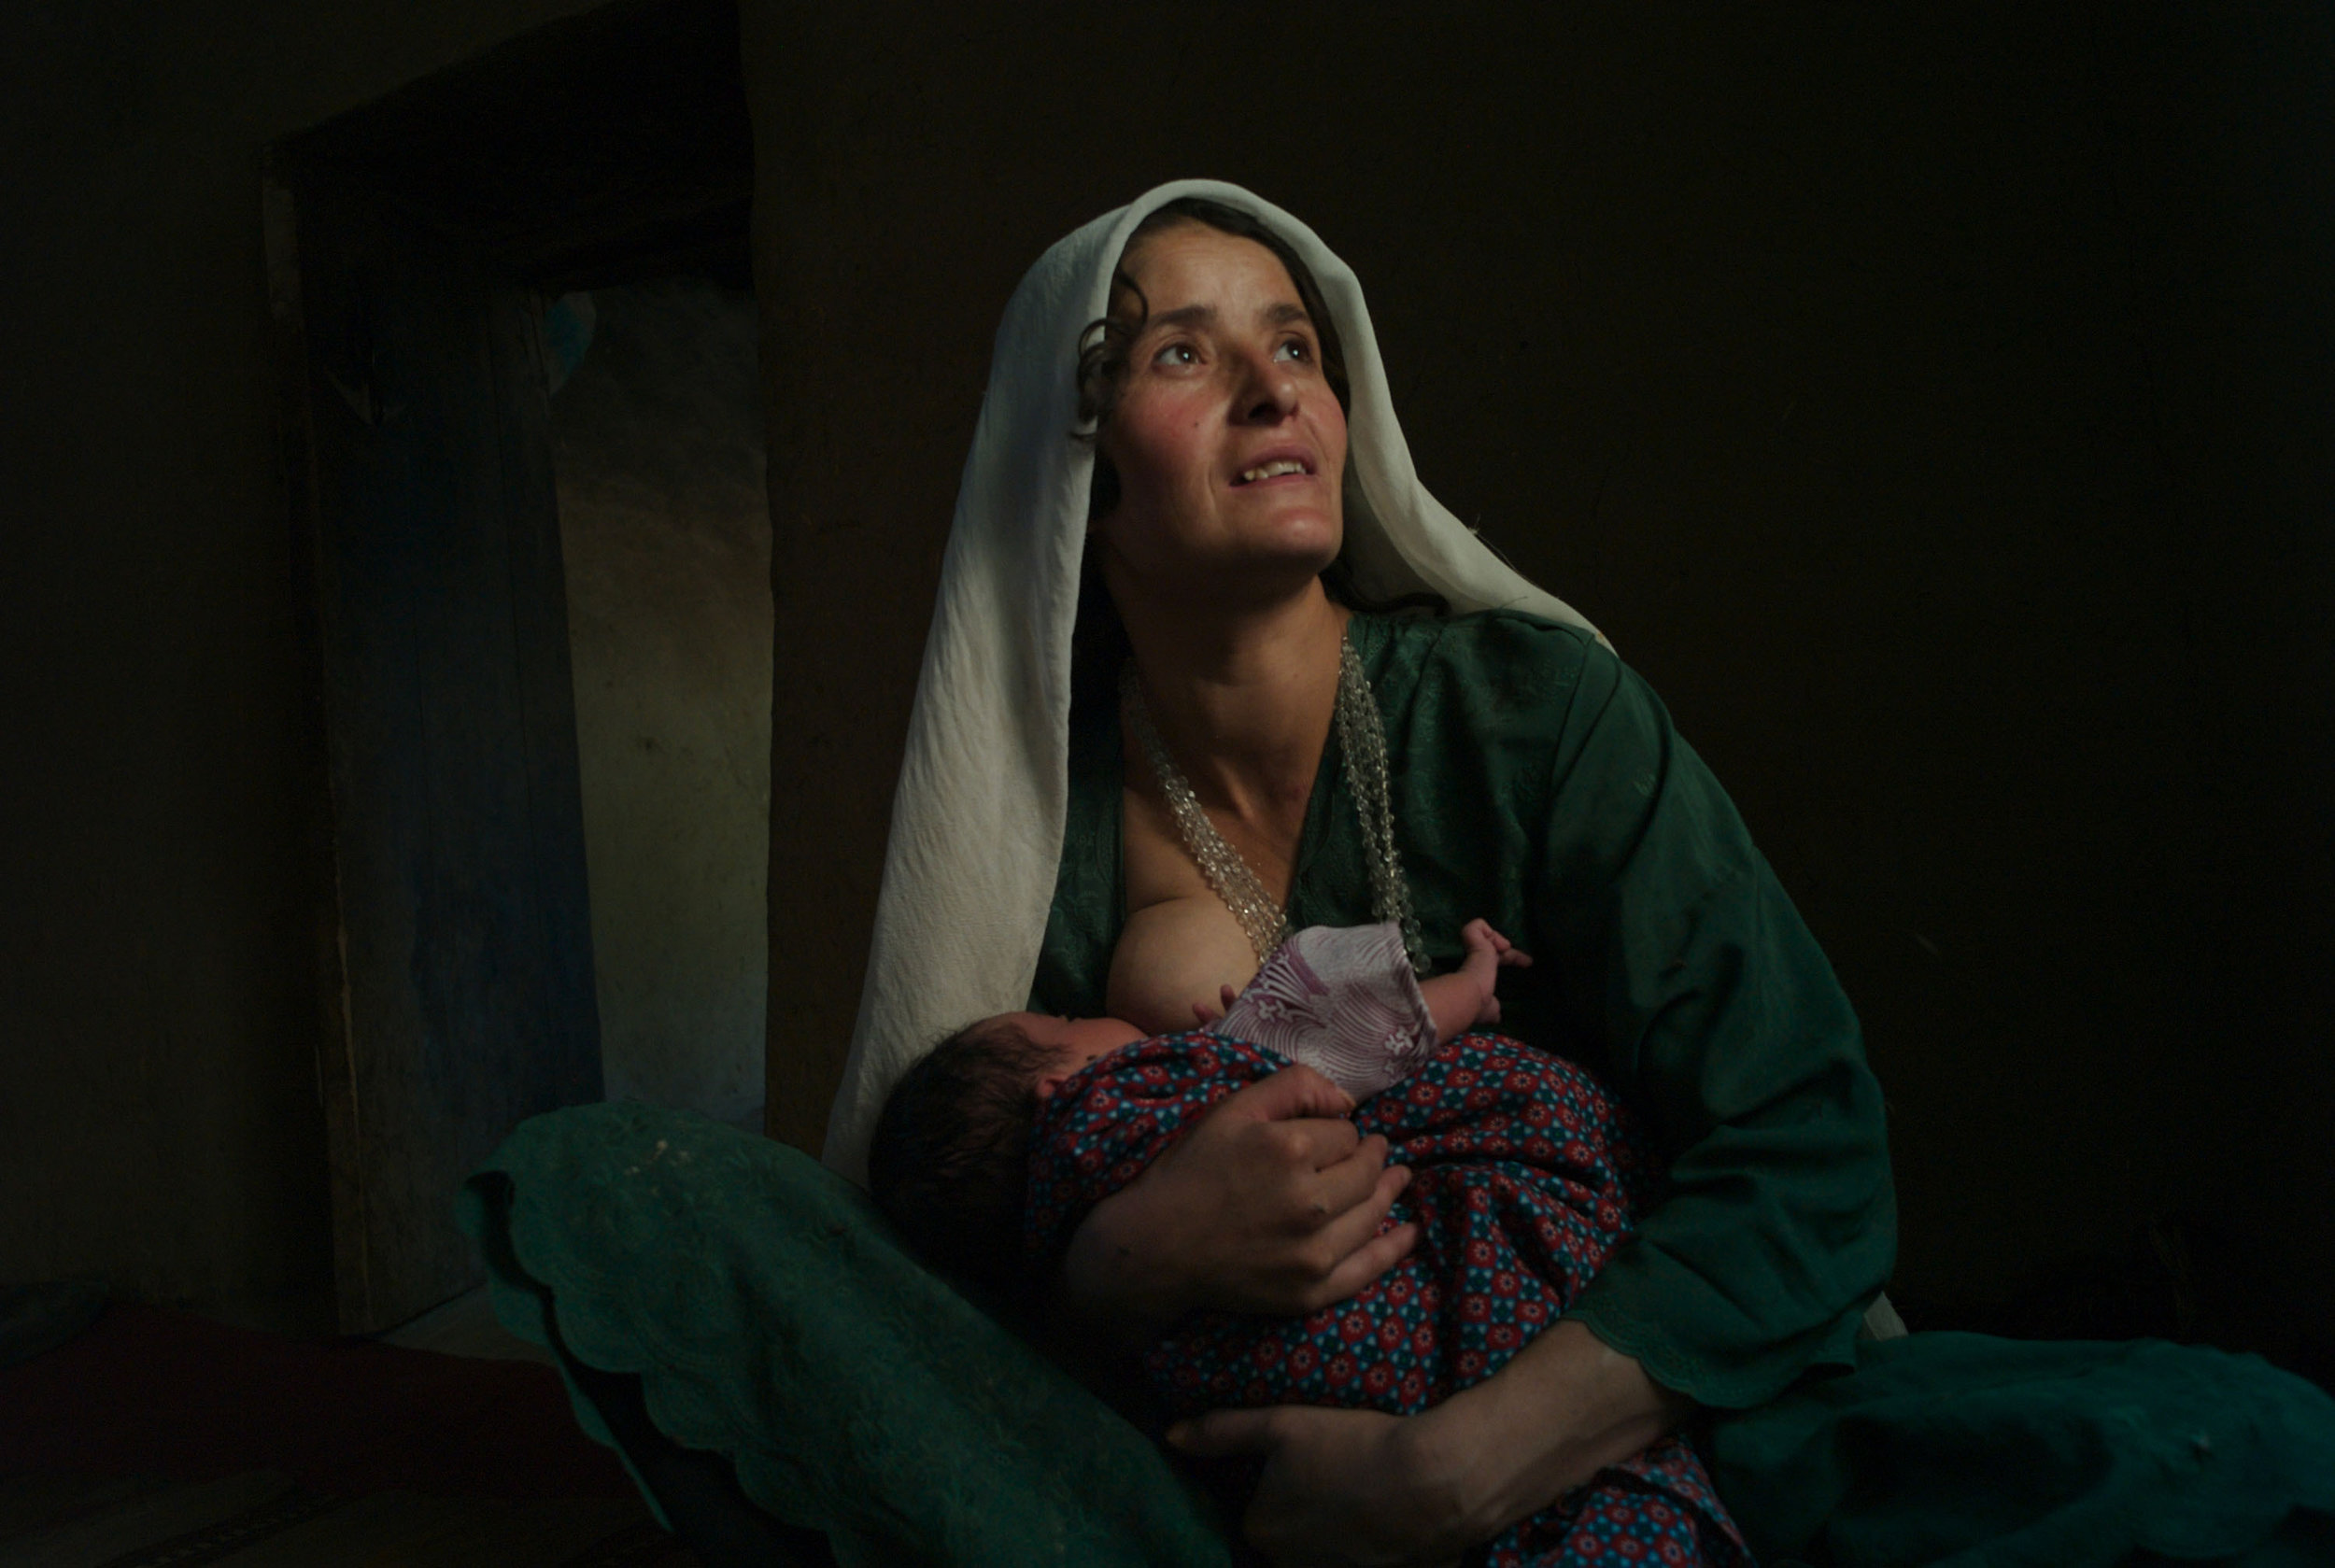 Afghanistan, Shahr-I-Buzorg, August 2008, Siamoy breast feeds her month old baby boy Hokim as she goes to visit her sisters at their home in Khourdakon village. Situated in the remote mountainous province of Badakshan, the area has the highest rate of maternal mortality in the world.